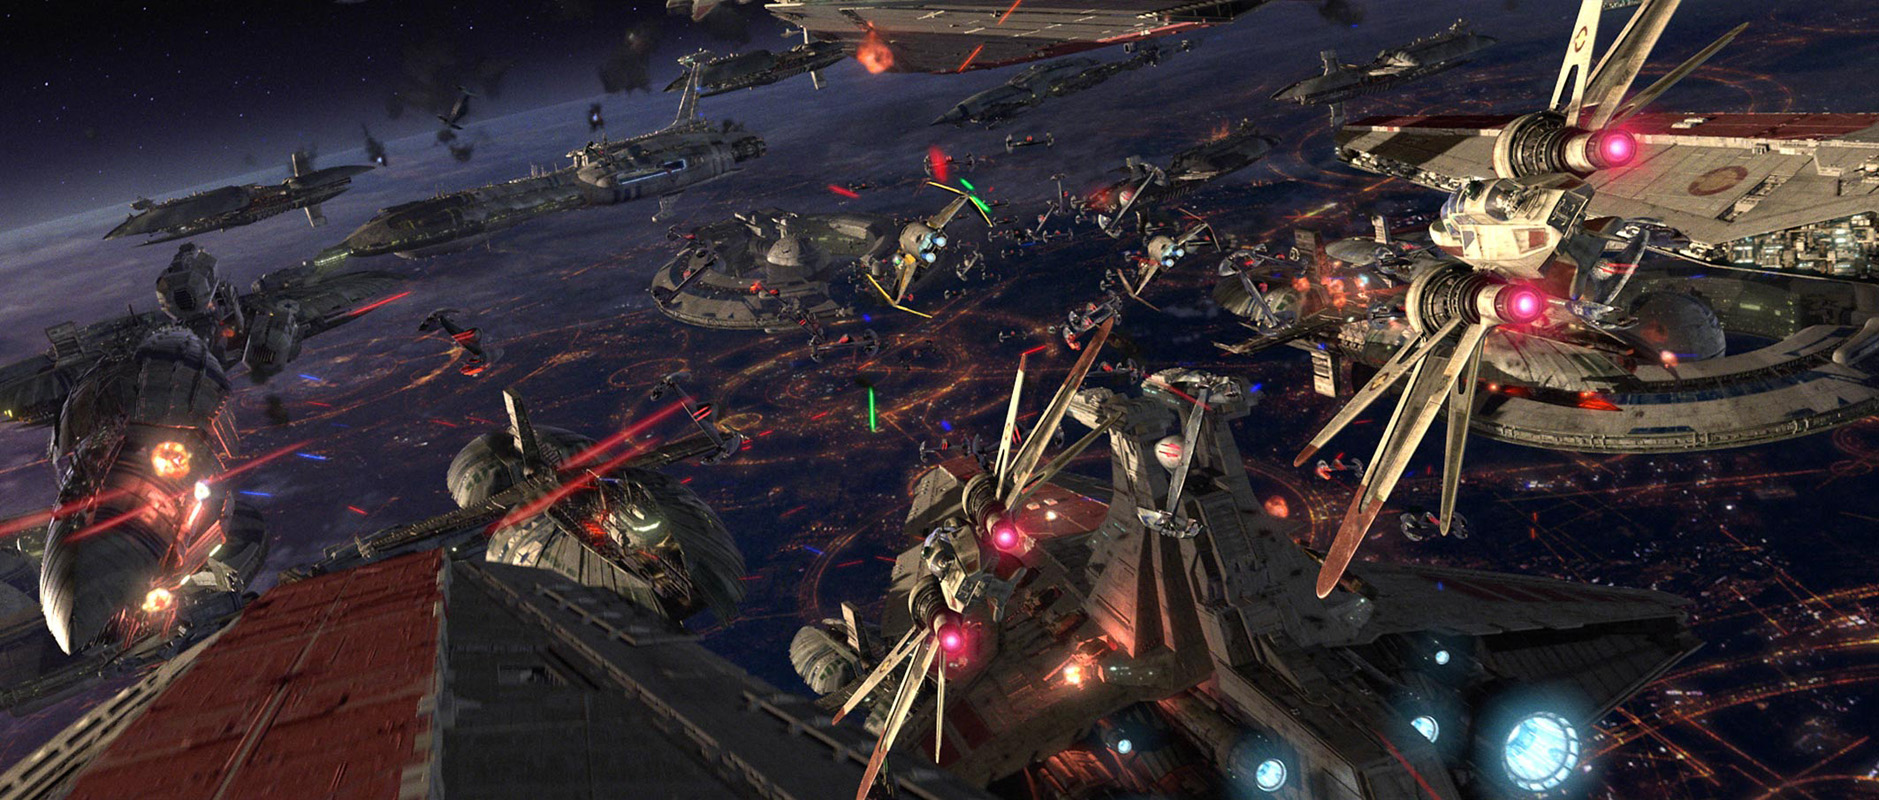 Battle of Coruscant Wookieepedia FANDOM powered by Wikia 1879x800